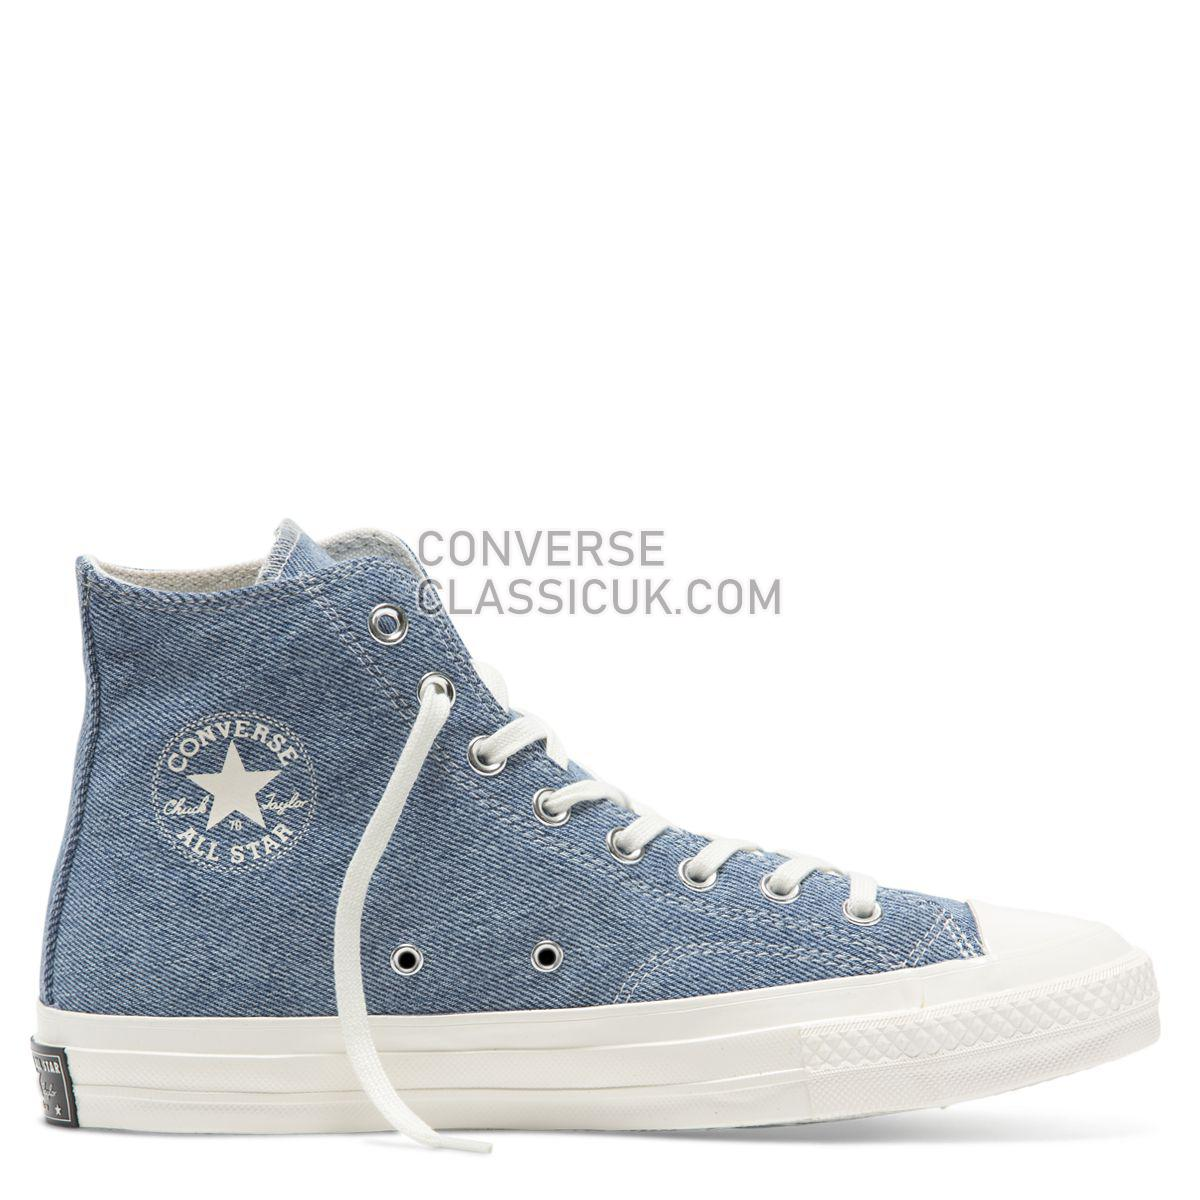 Converse Chuck Taylor All Star 70 Renew High Top Light Denim Mens Womens Unisex 165648 Light Denim/Egret/Egret Shoes